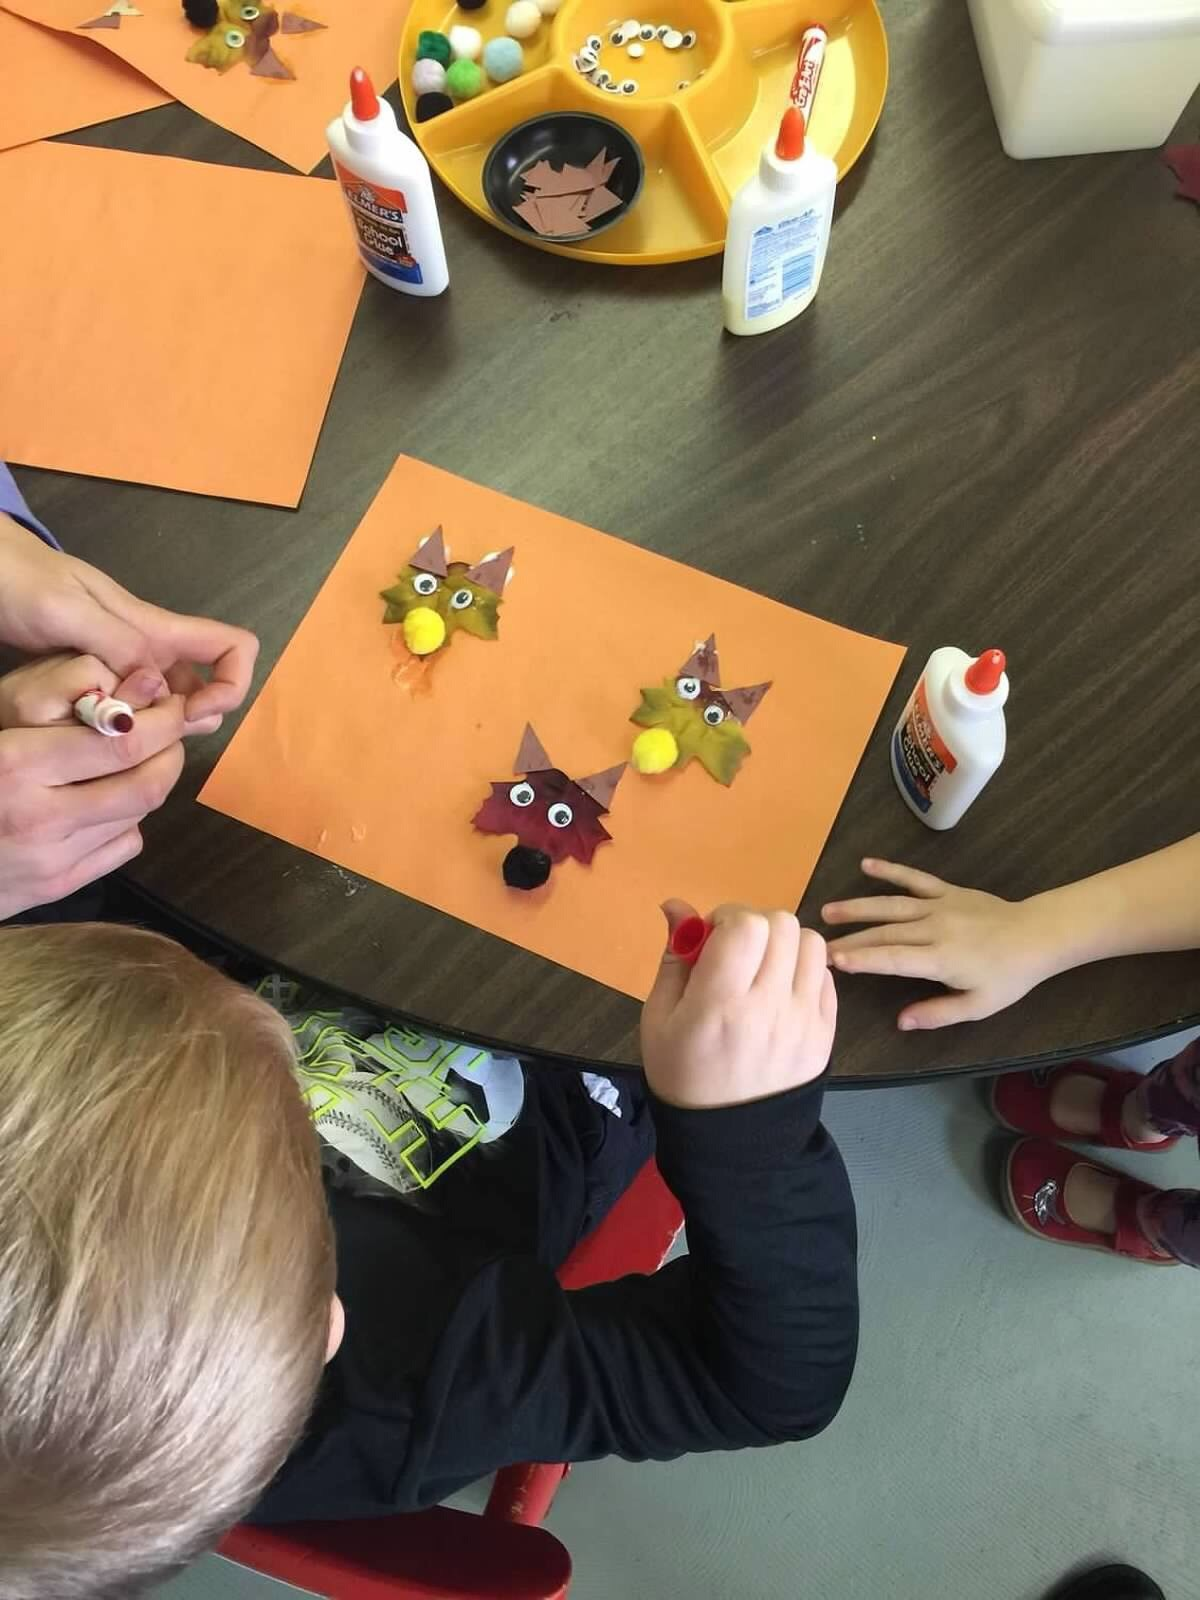 Children learning arts and crafts